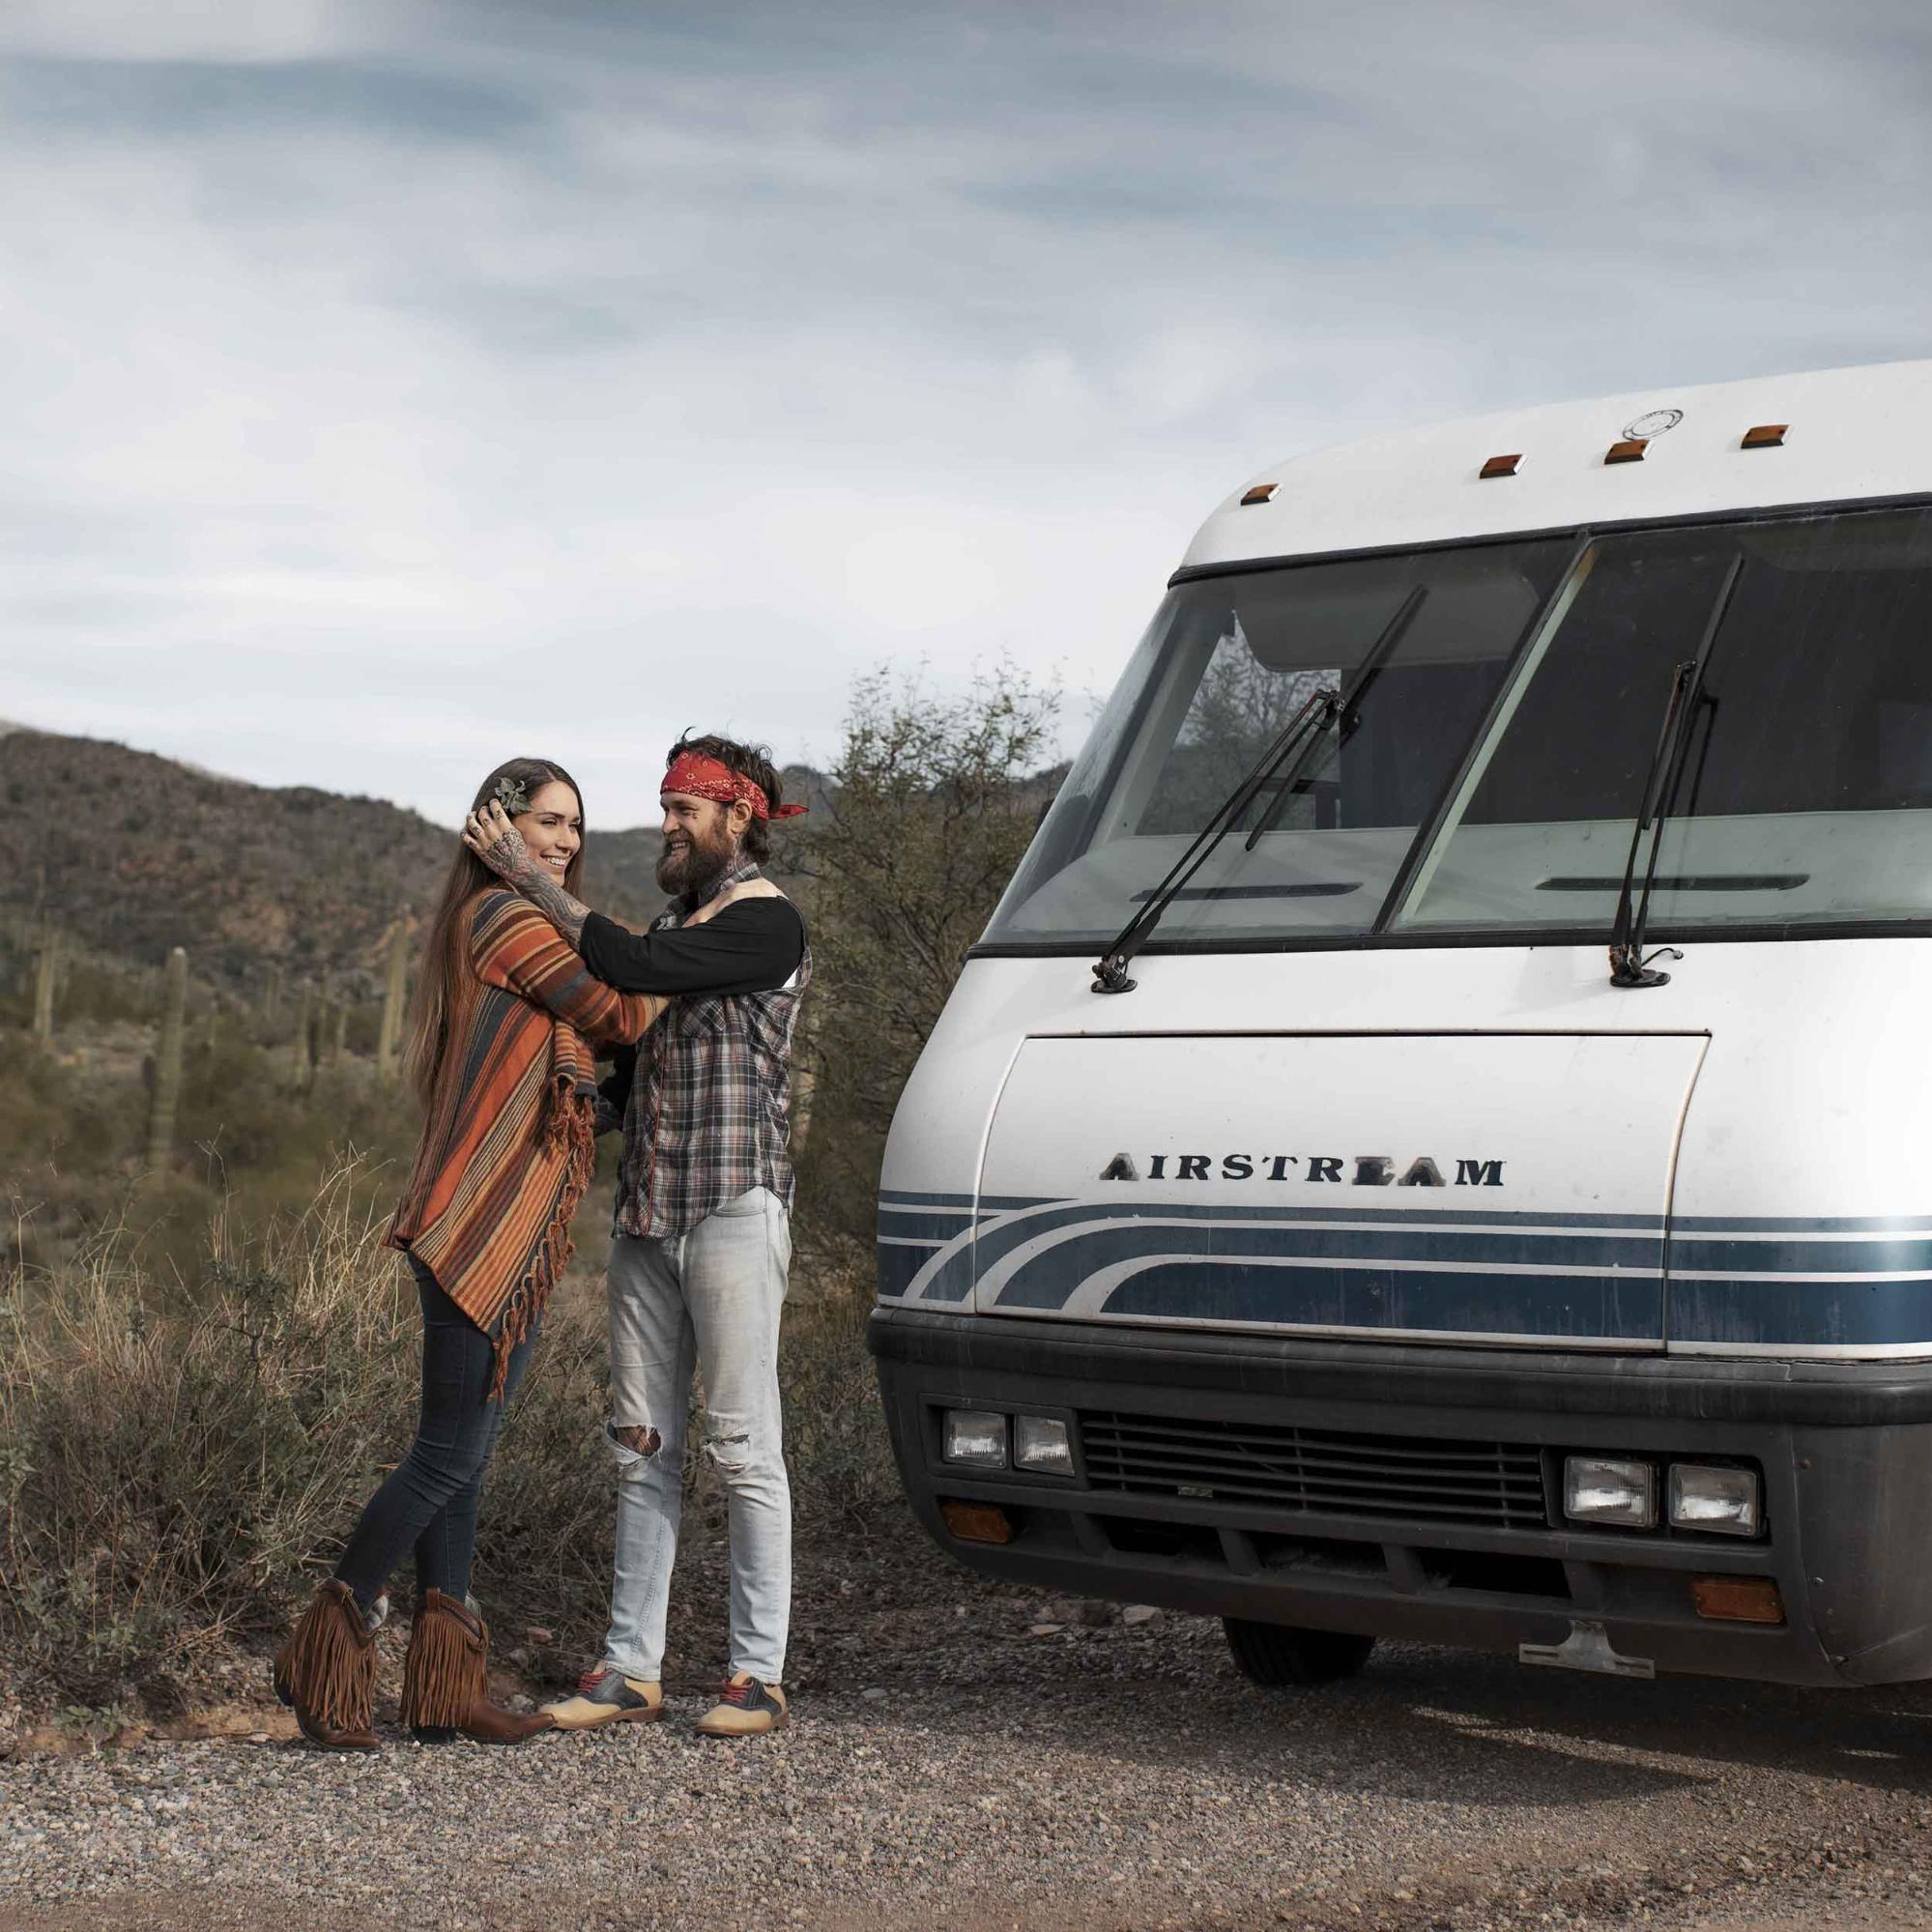 Reggie and Monica next to the RV on the road